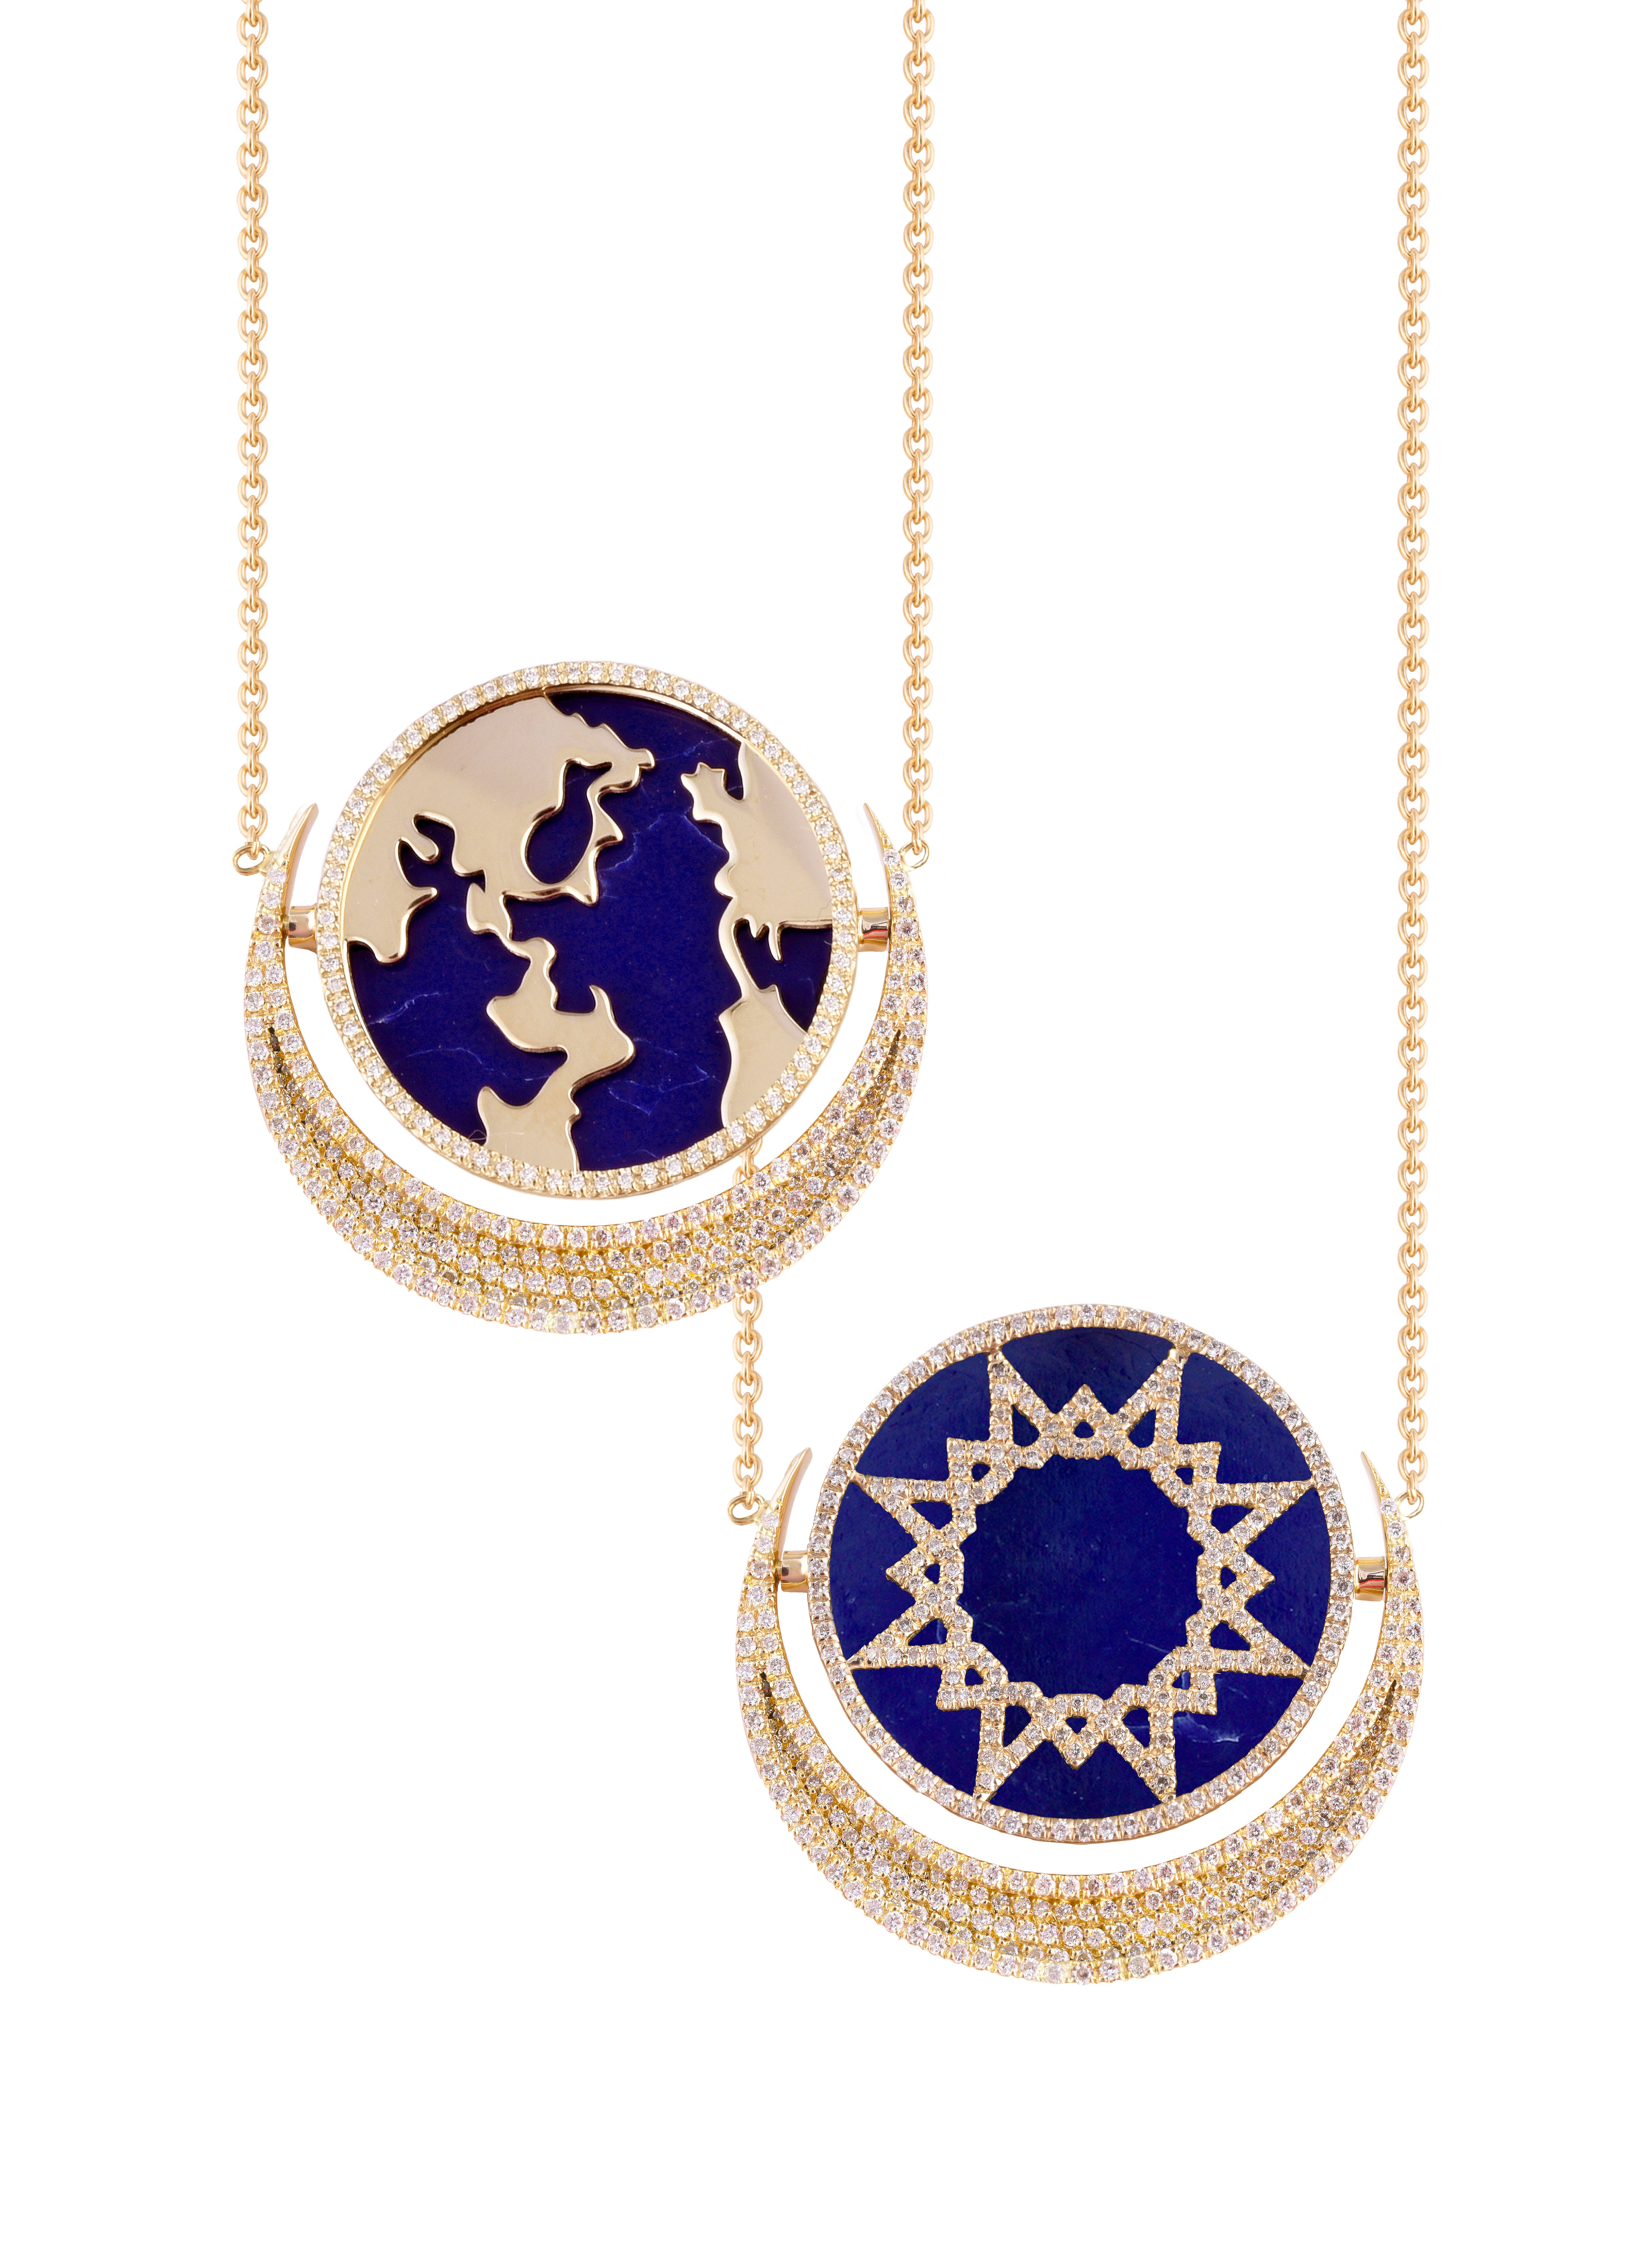 My World Reversible Pendant, Lapis, Paved In Diamonds